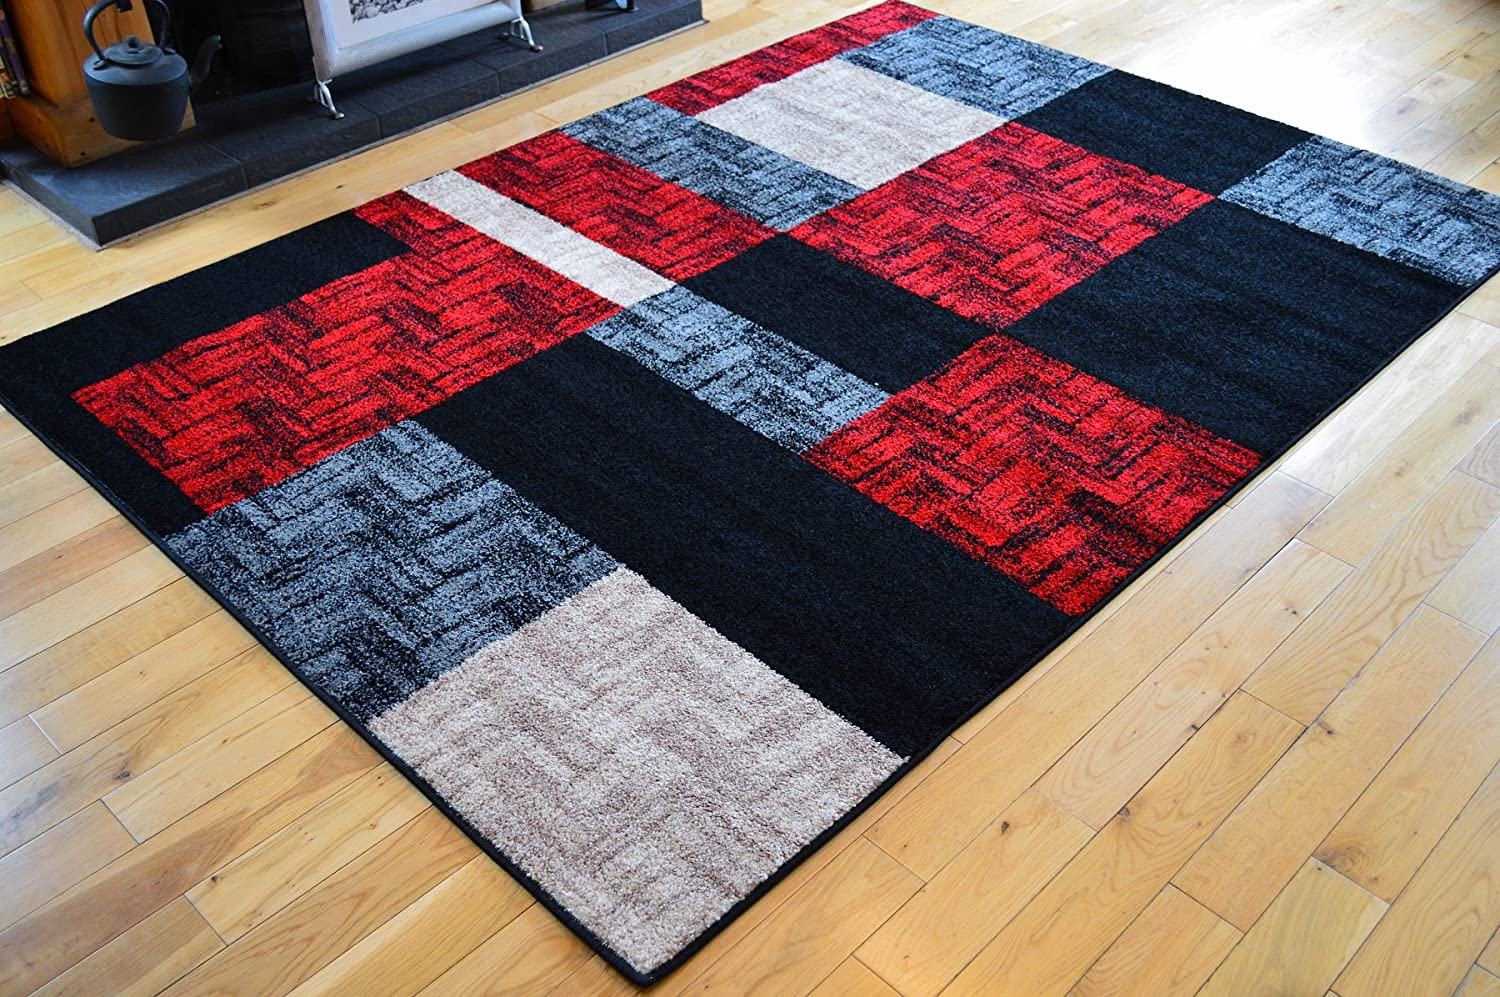 Modern Rugs Square Pattern Grey /& Red Designer Rug Small Extra Large Living Room